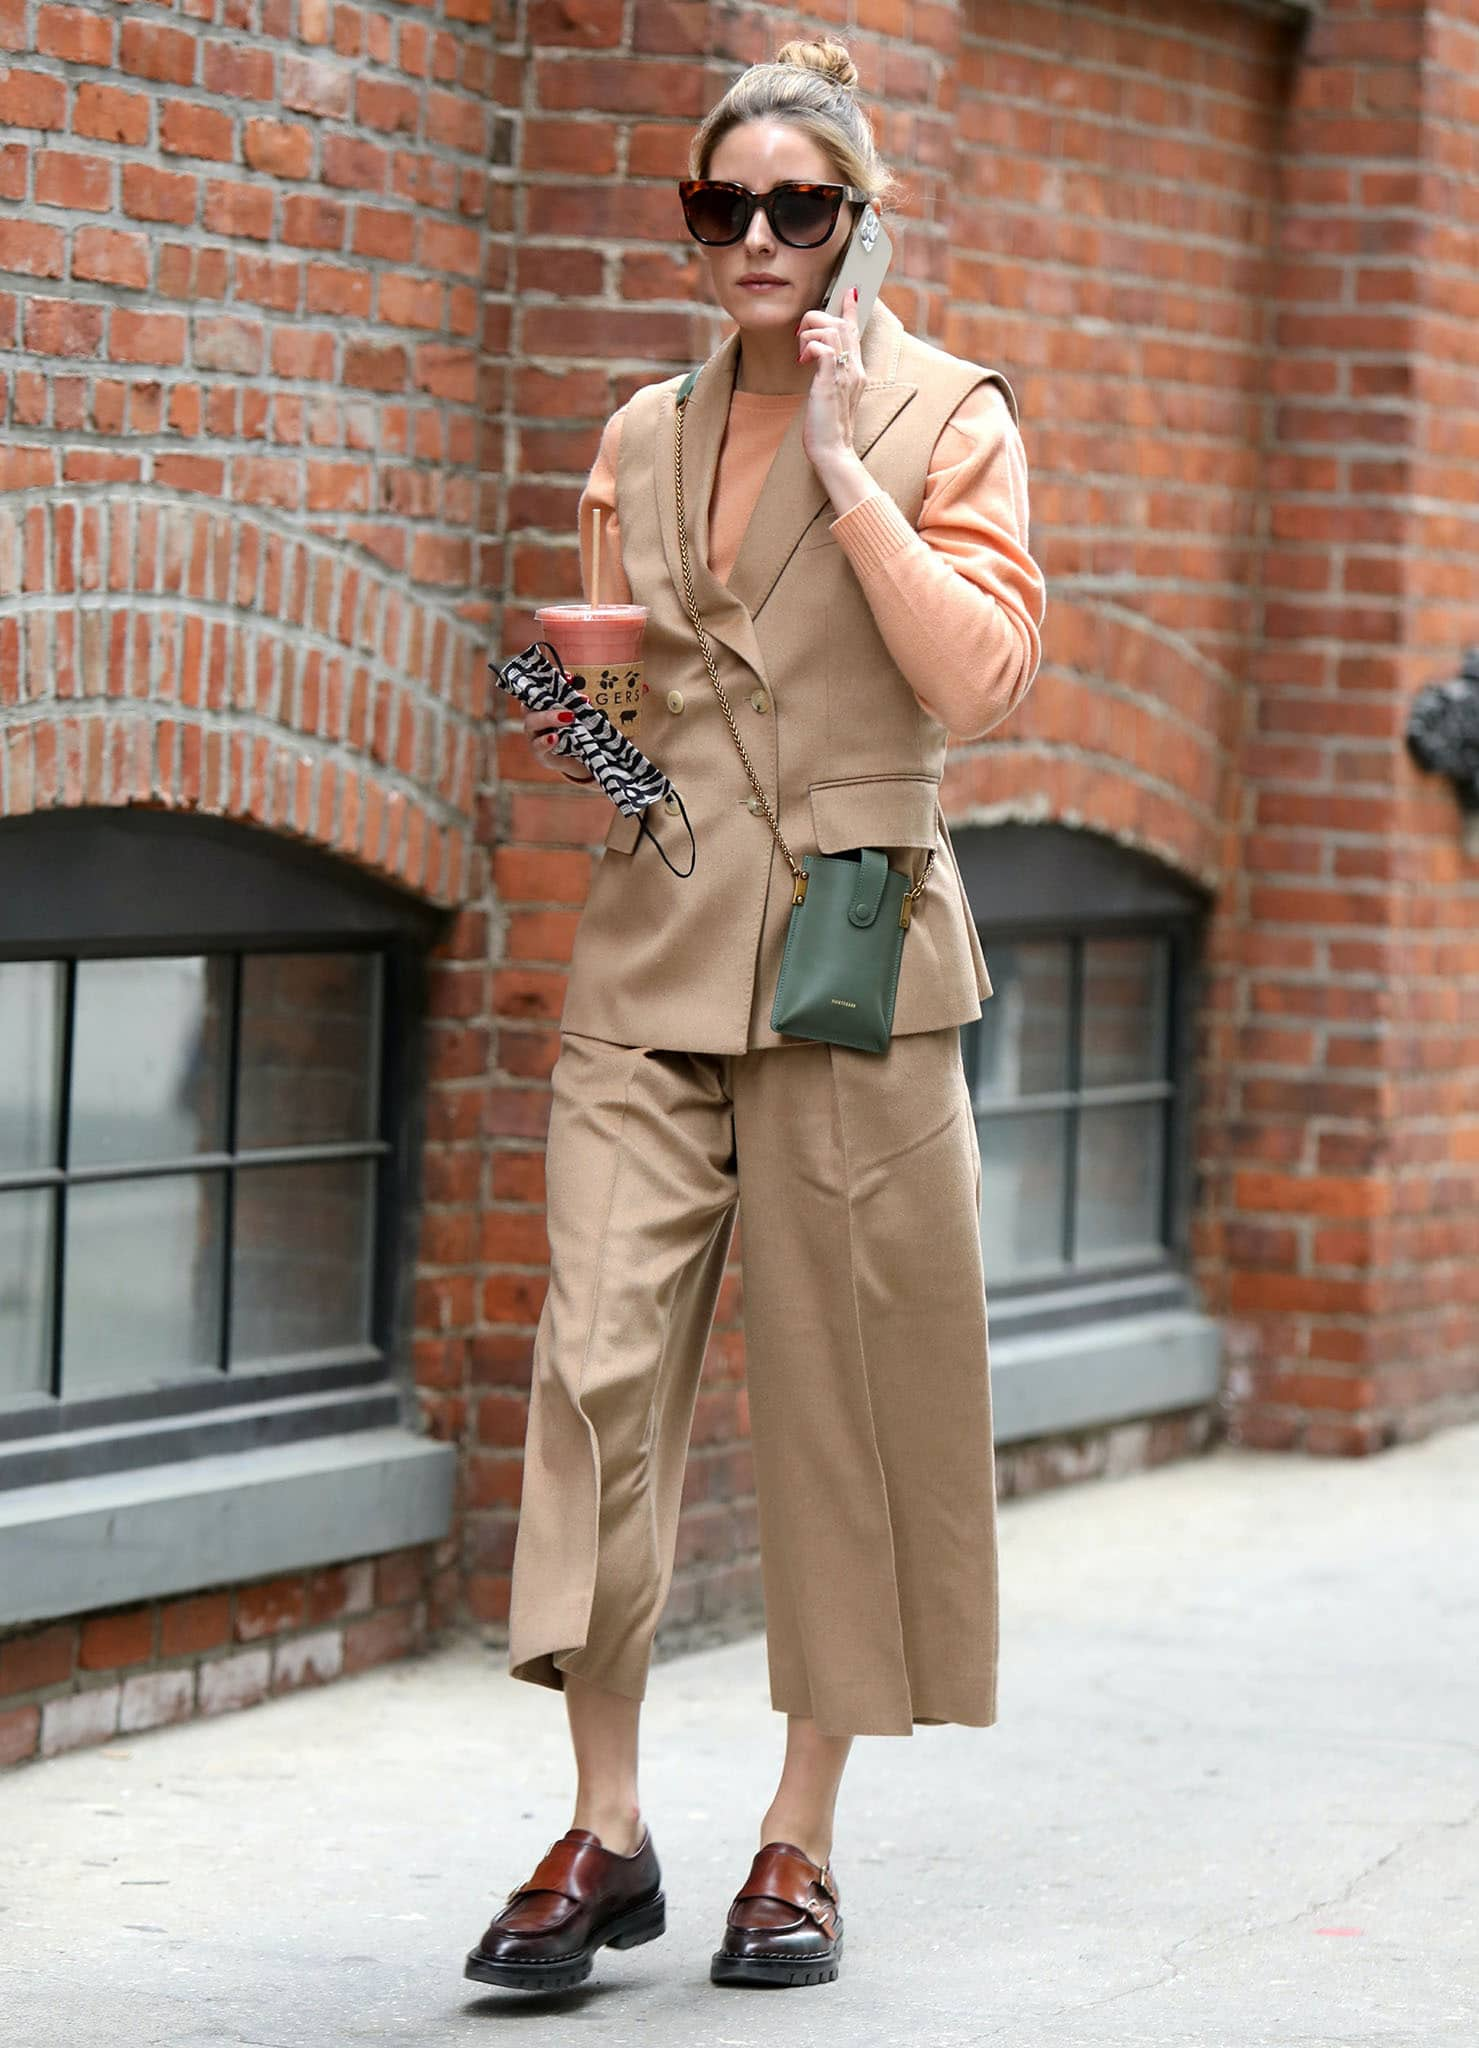 Olivia Palermo grabs smoothie in Max Mara camel trousers, vest, and sweater in New York City on May 3, 2021